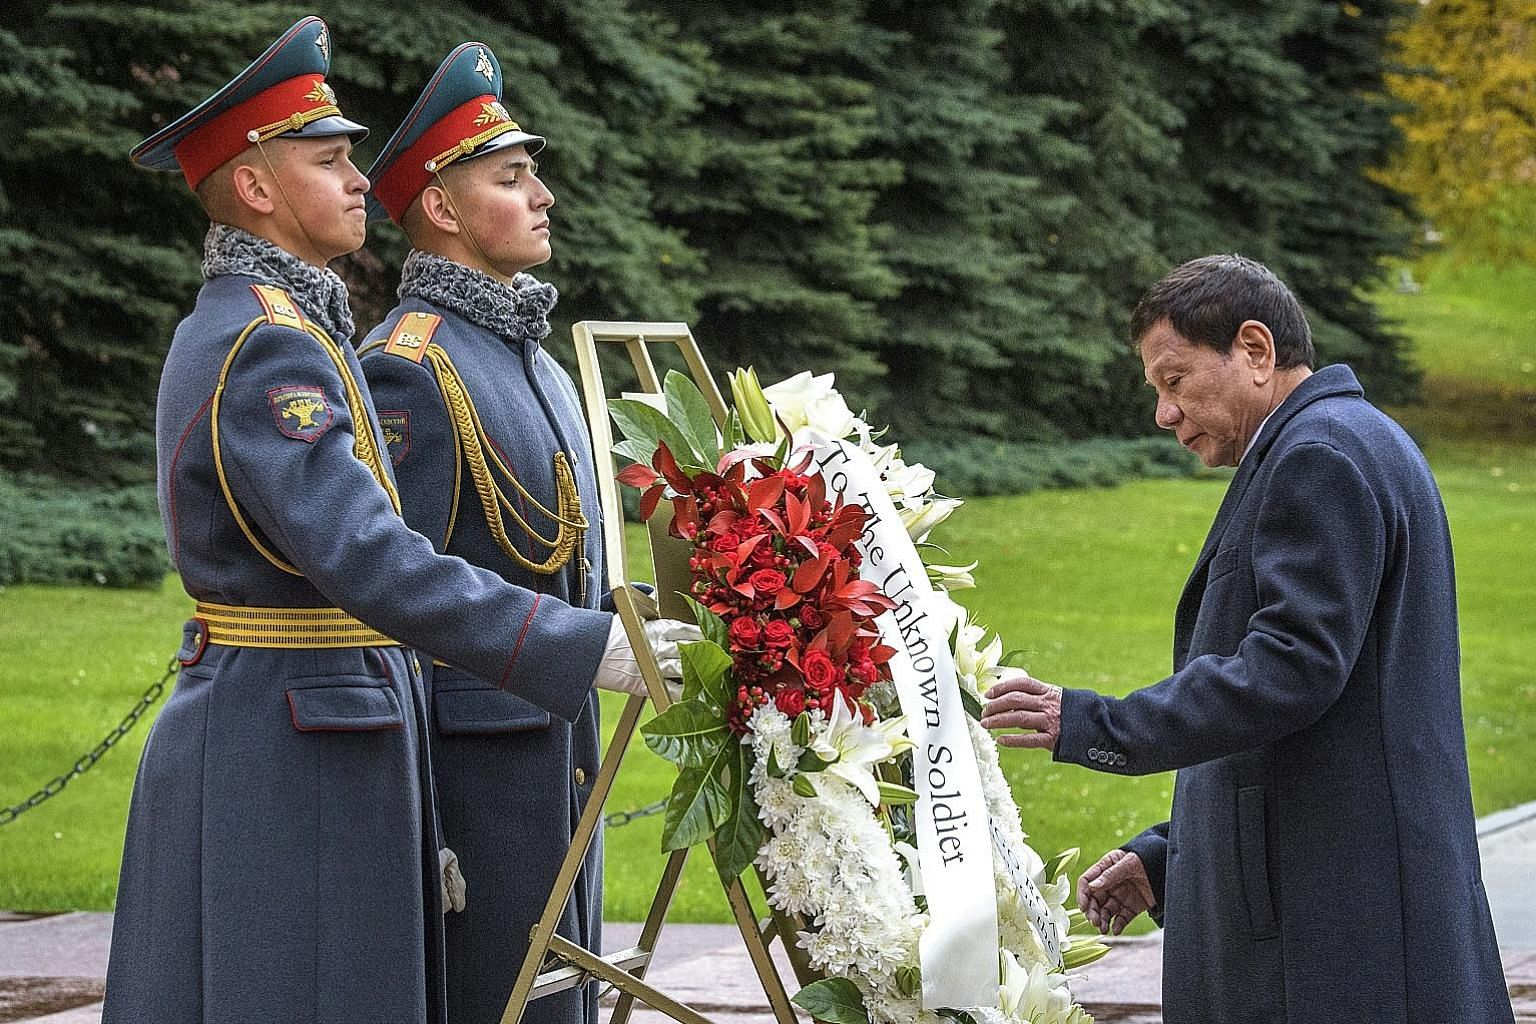 Philippine President Rodrigo Duterte at a wreath-laying ceremony at the Tomb of the Unknown Soldier in Moscow on Oct 4. During his five-day trip to Russia earlier this month, Mr Duterte noted in a speech in Sochi that the Philippines' Russia policy i